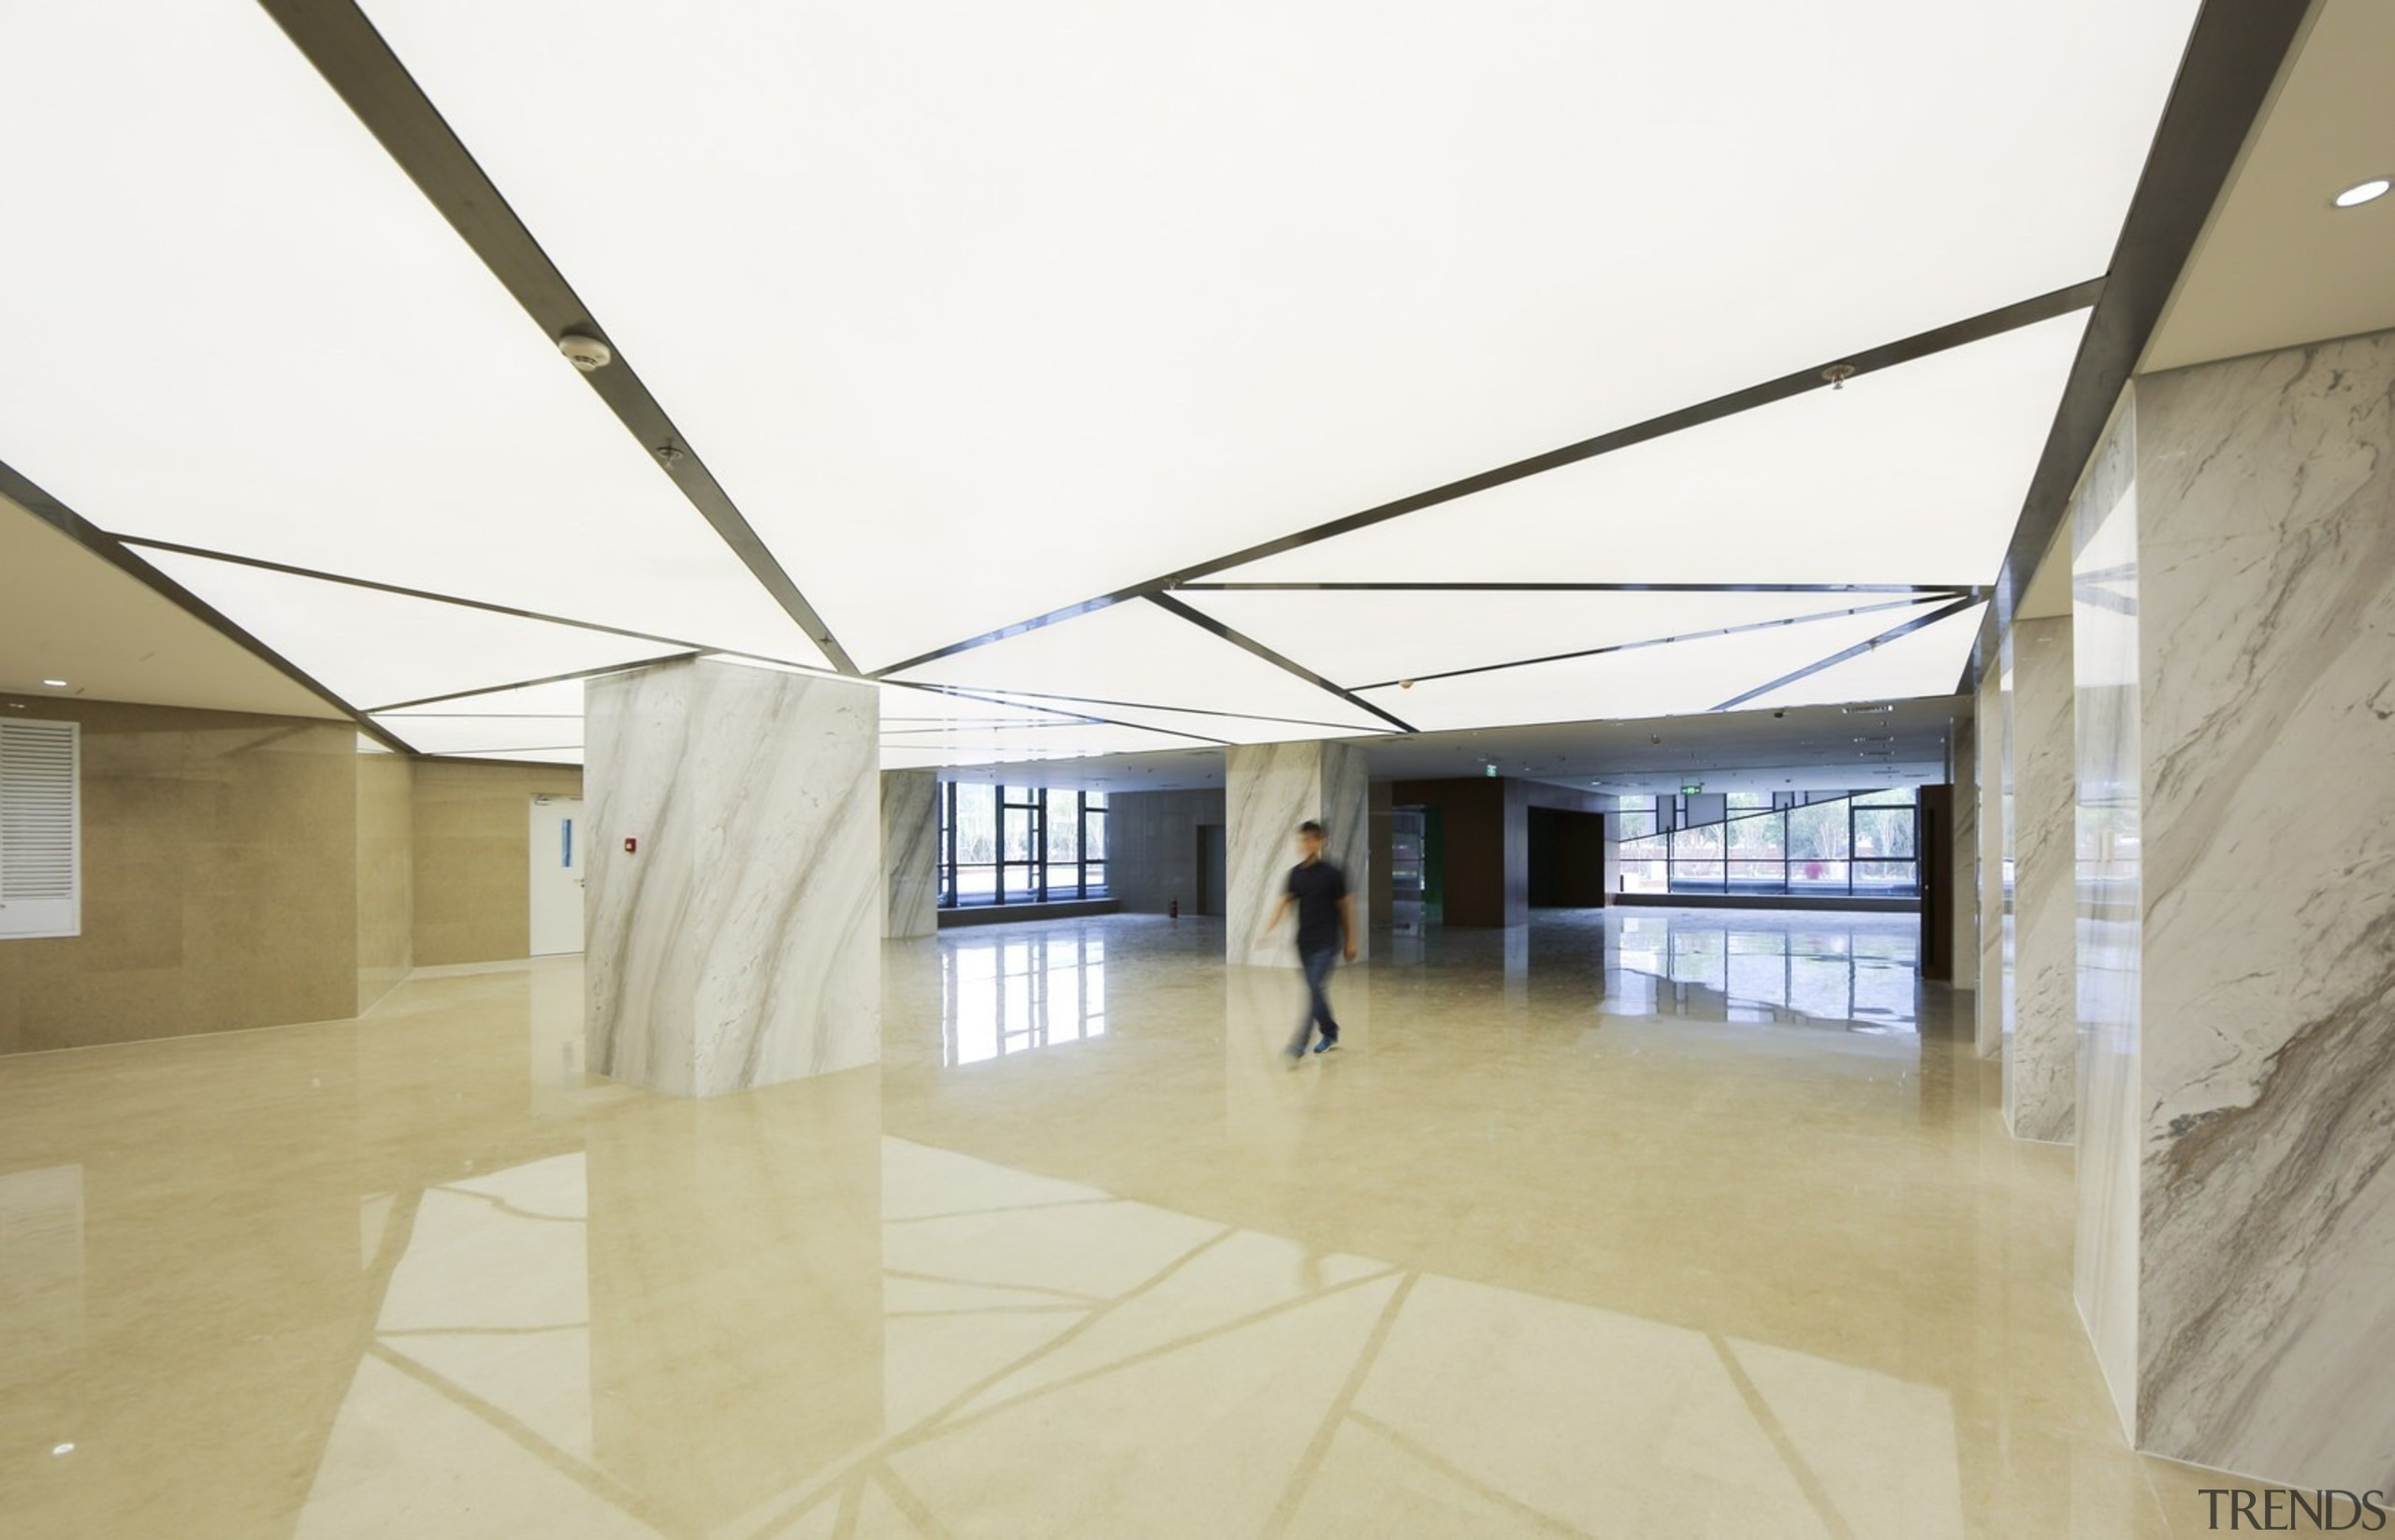 xxx - architecture | ceiling | daylighting | architecture, ceiling, daylighting, floor, flooring, glass, lobby, property, real estate, structure, tourist attraction, white